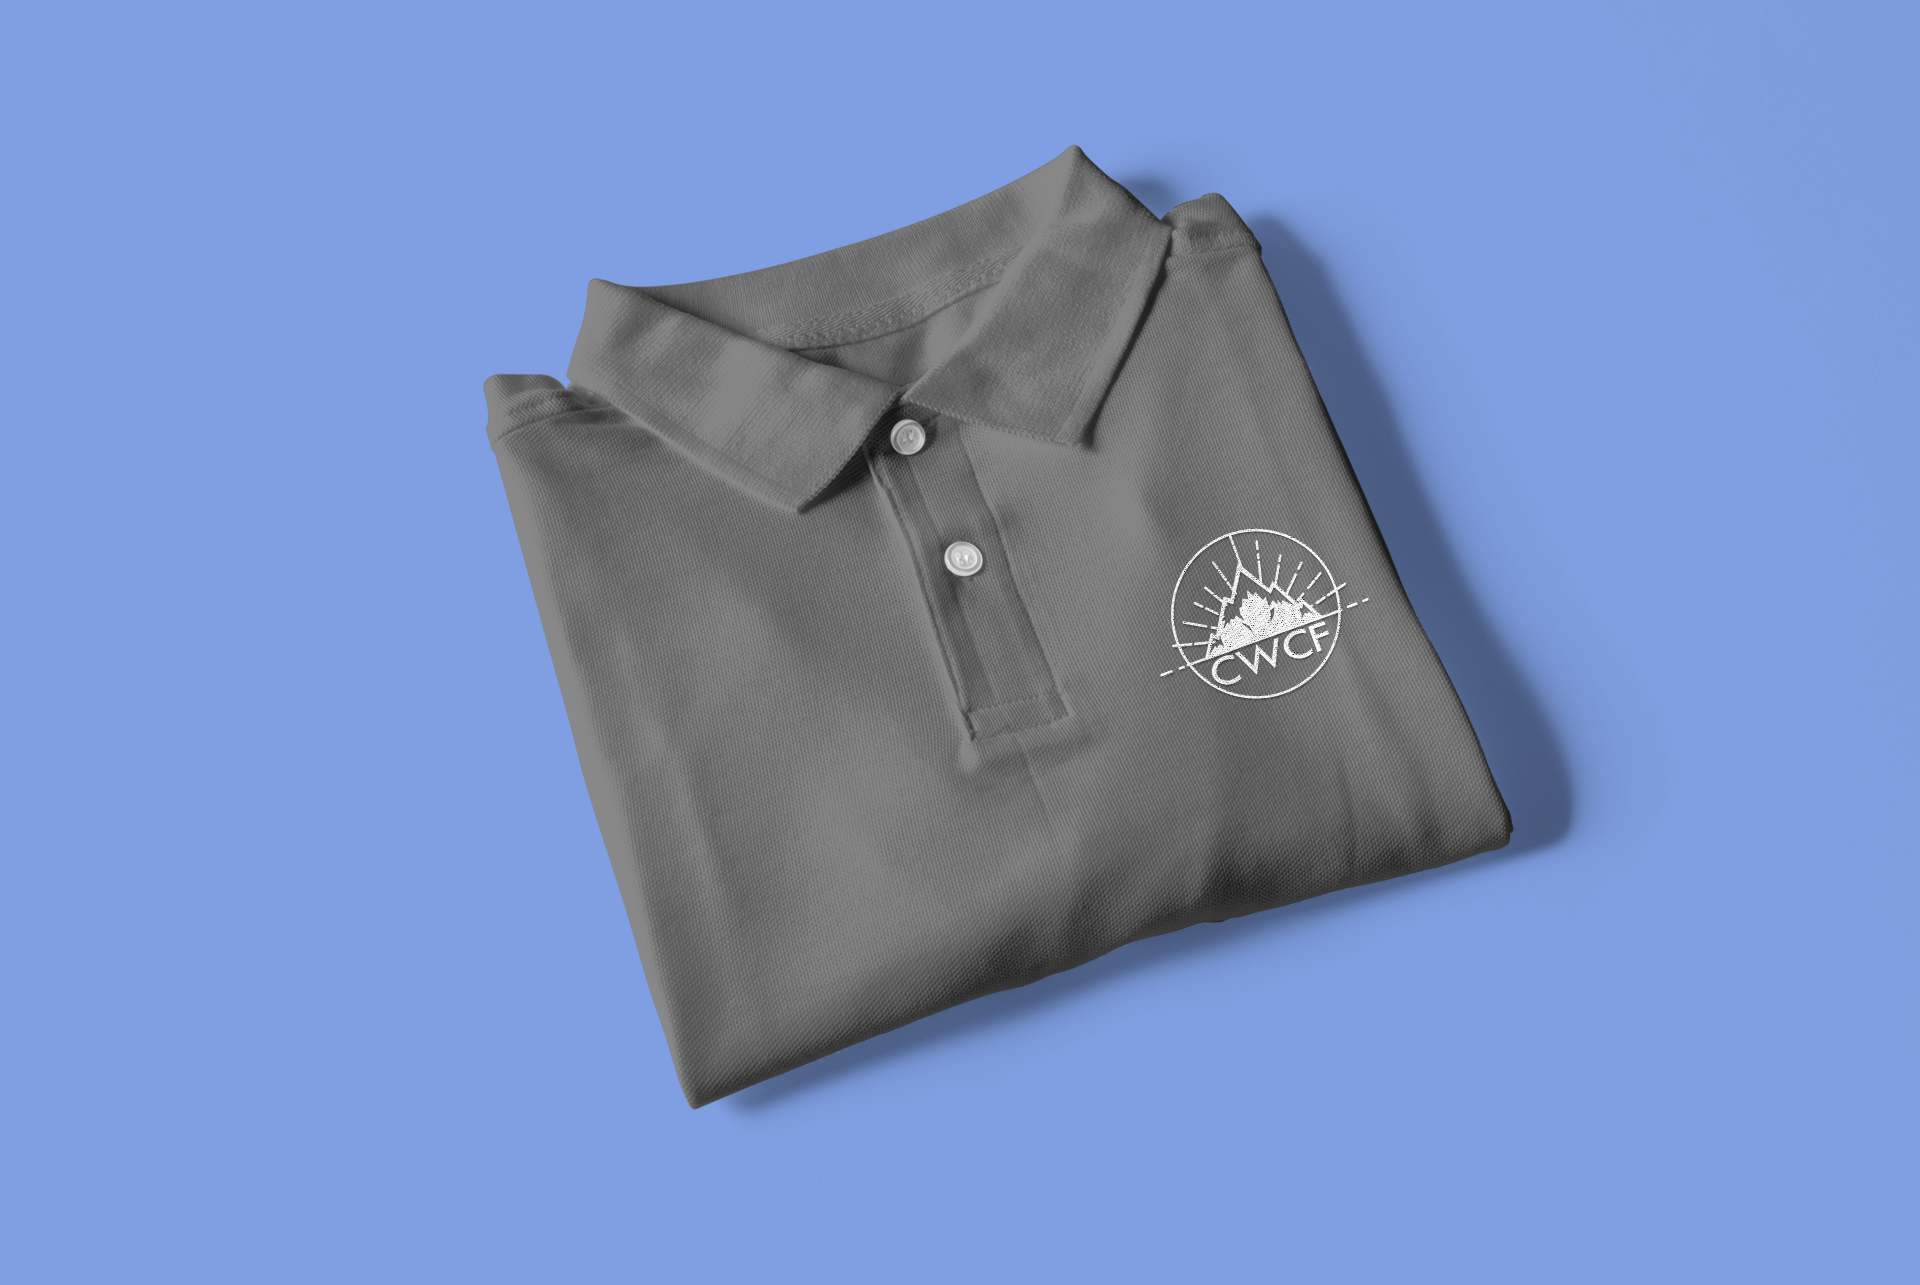 Branding and work uniform polo design by Thomas Mee Design Works